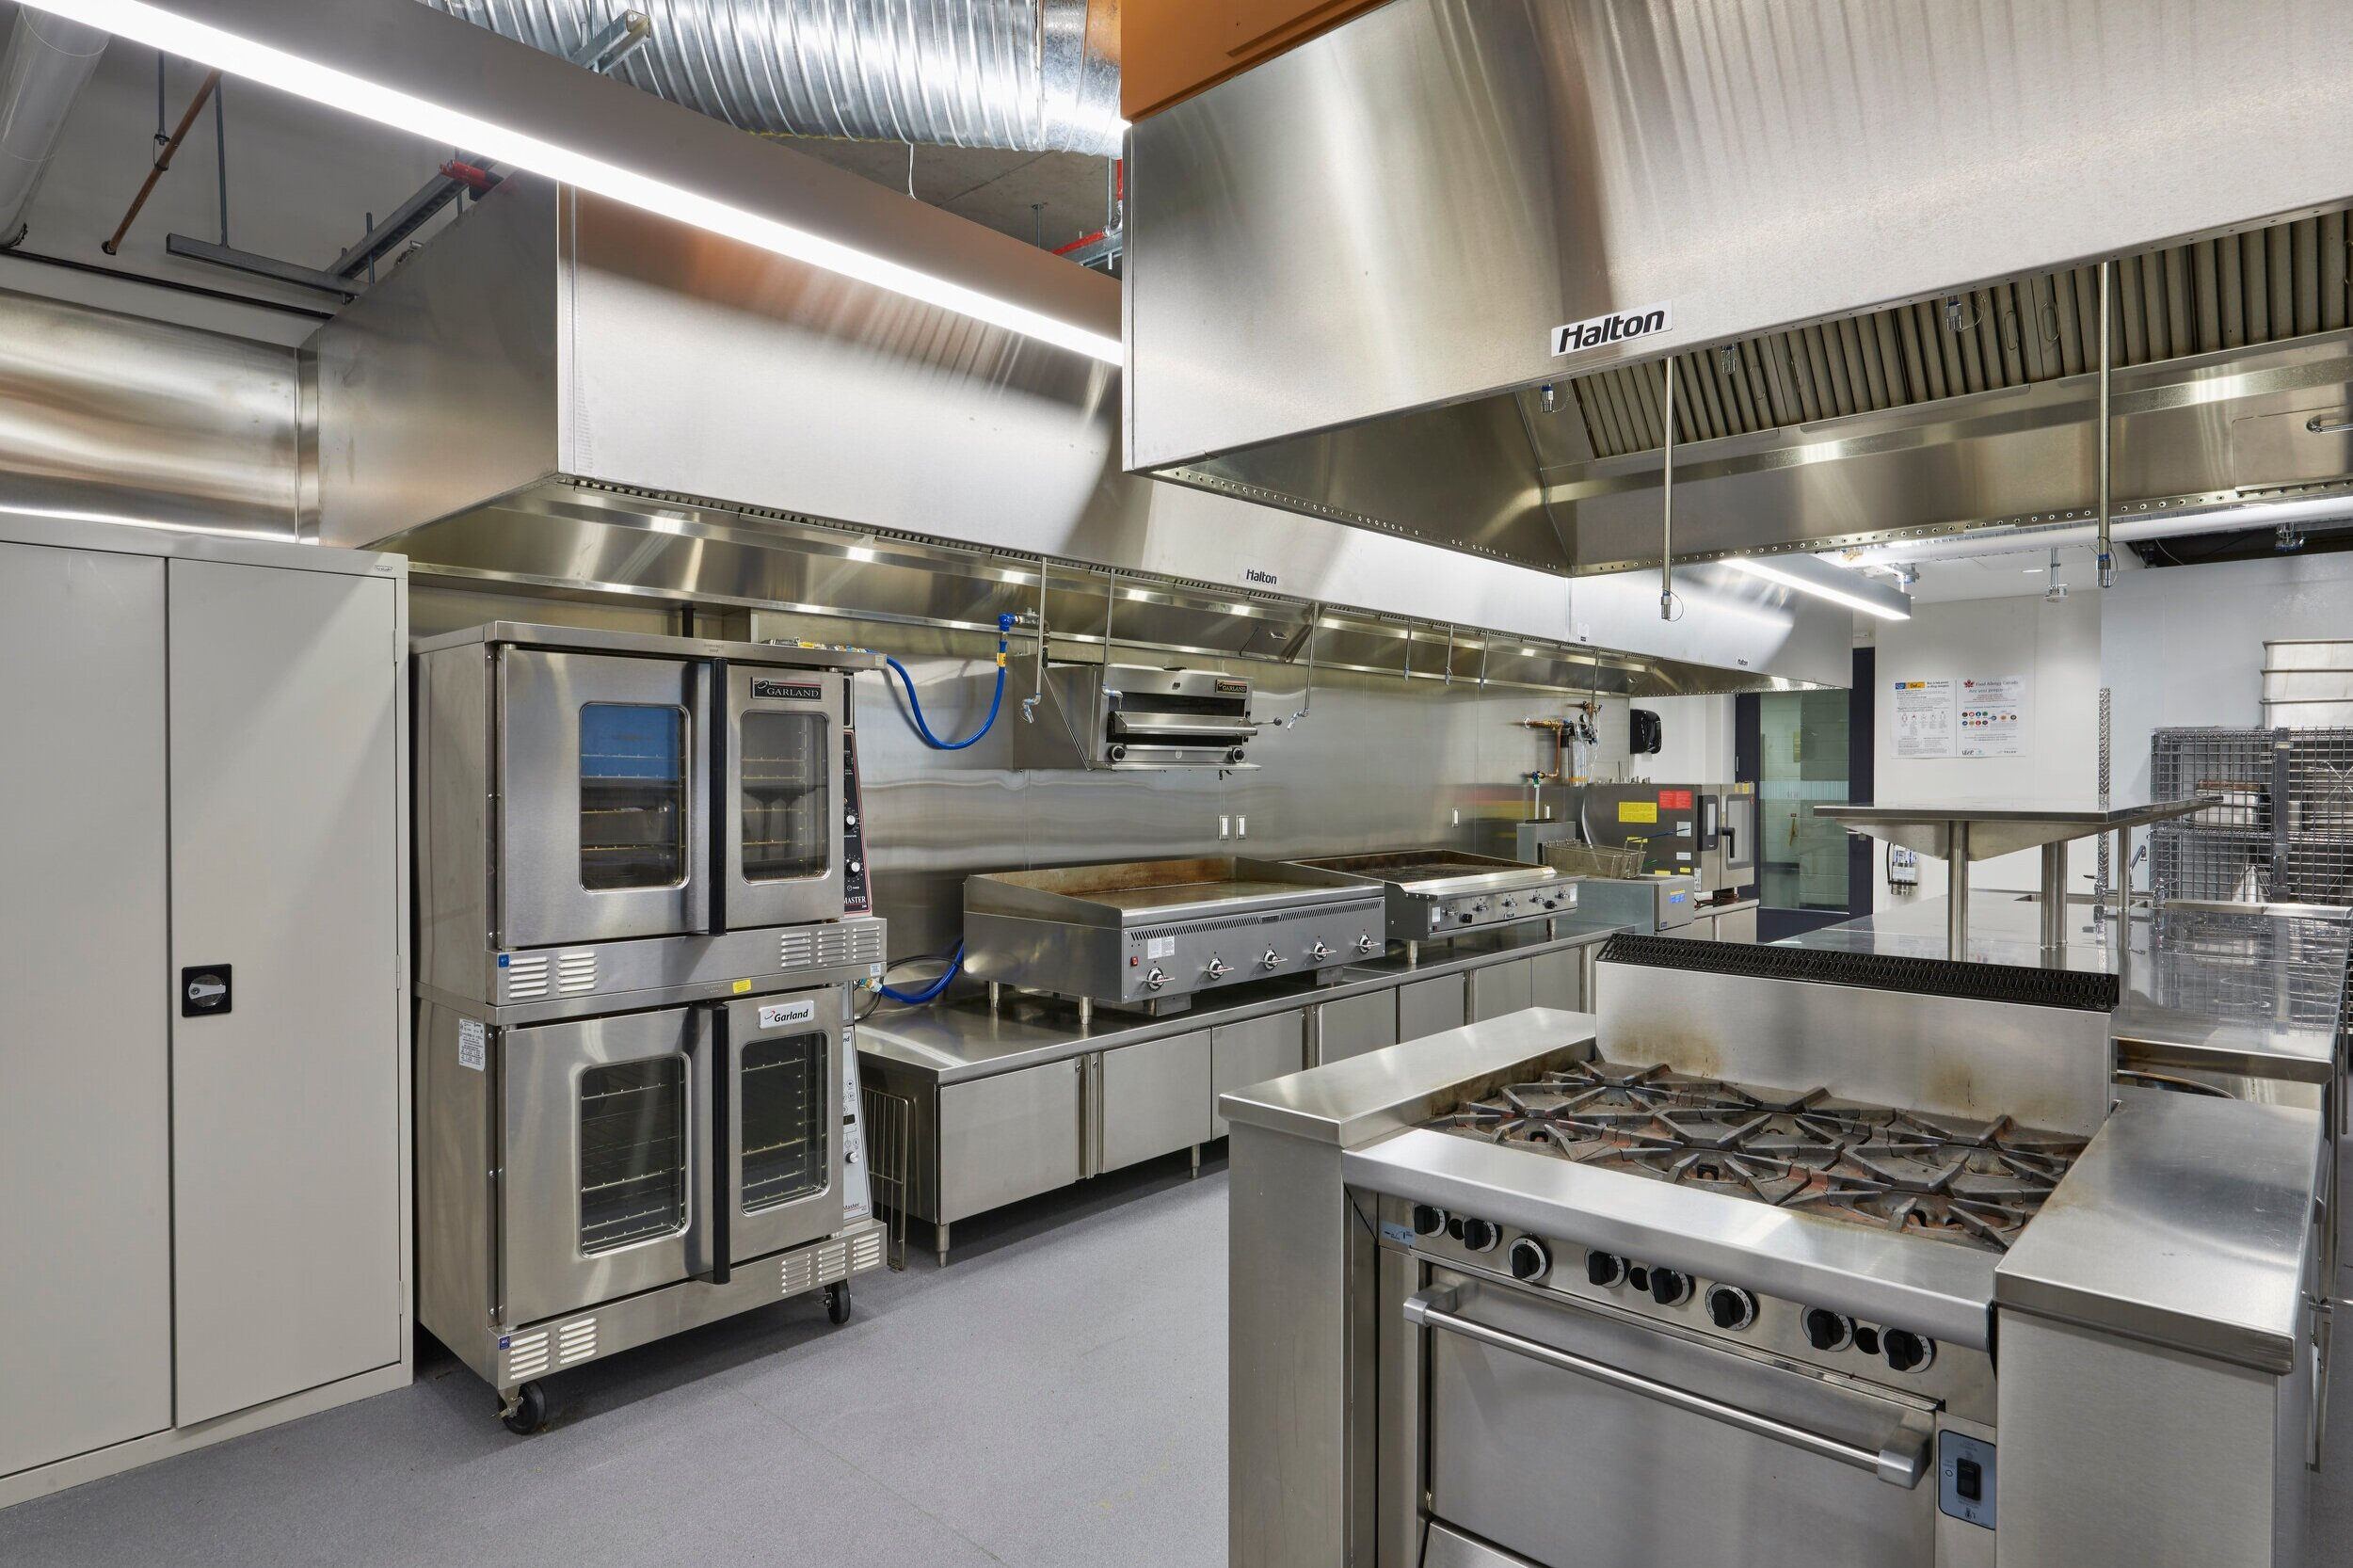 A Culinary Kitchen Lab at the Centre for Hospitality & Culinary Arts at George Brown College